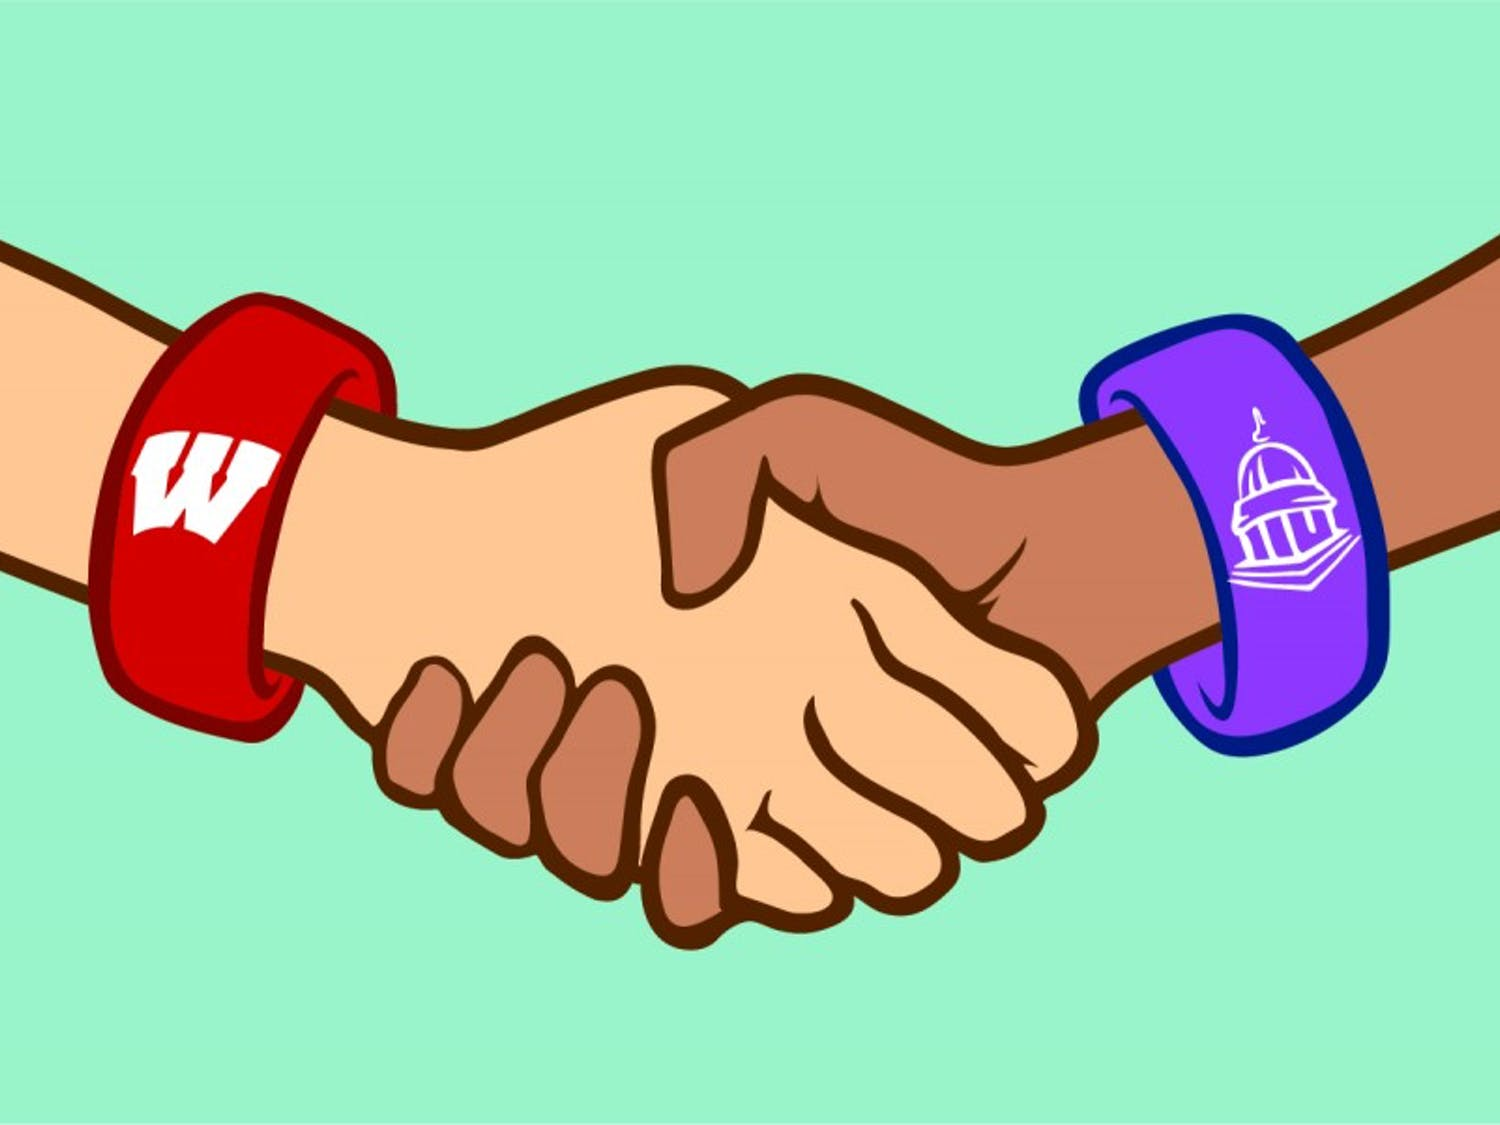 UW-Madison is hoping to expand service learning courses in order to help build relationships between students and the Madison community and to strengthen student learning.